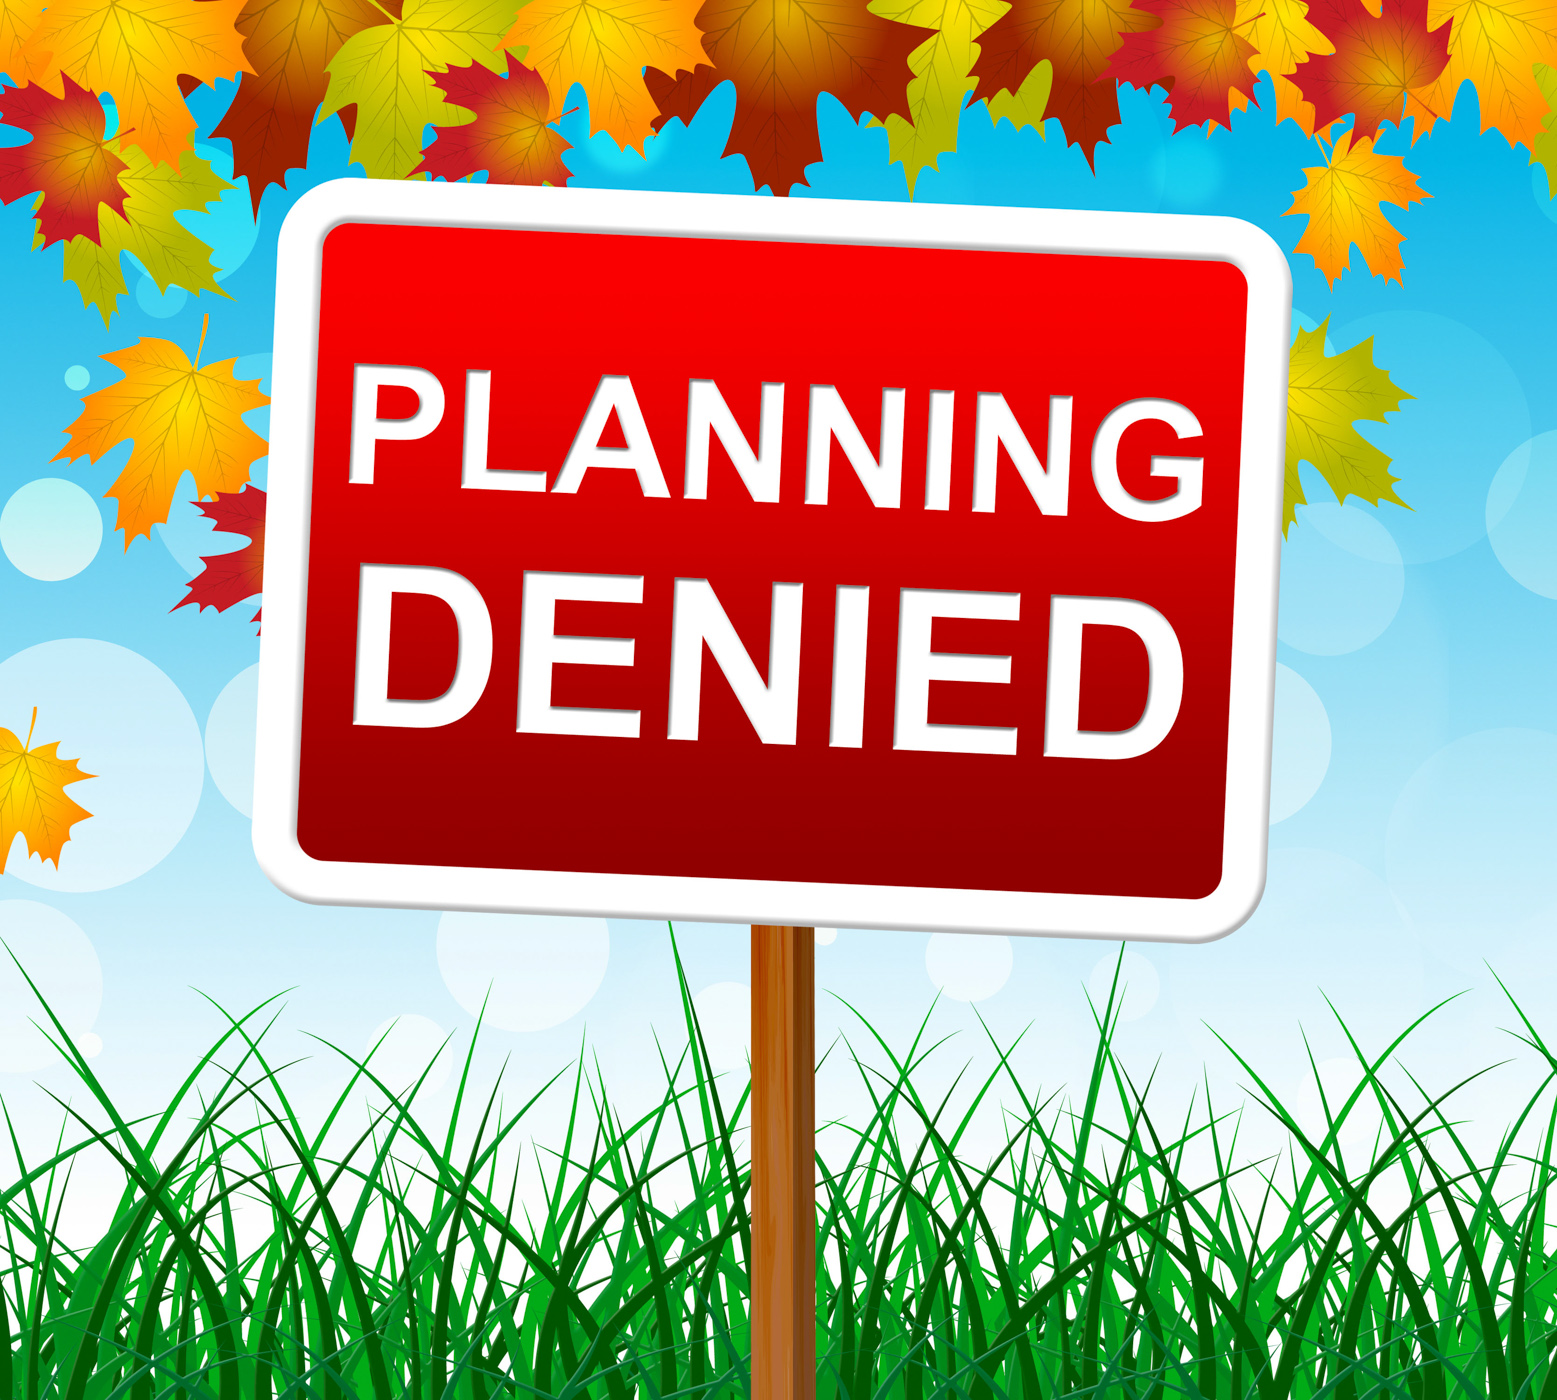 Planning Denied Means Missions Aim And Objective, Refusal, Plans, Planning, Refuse, HQ Photo